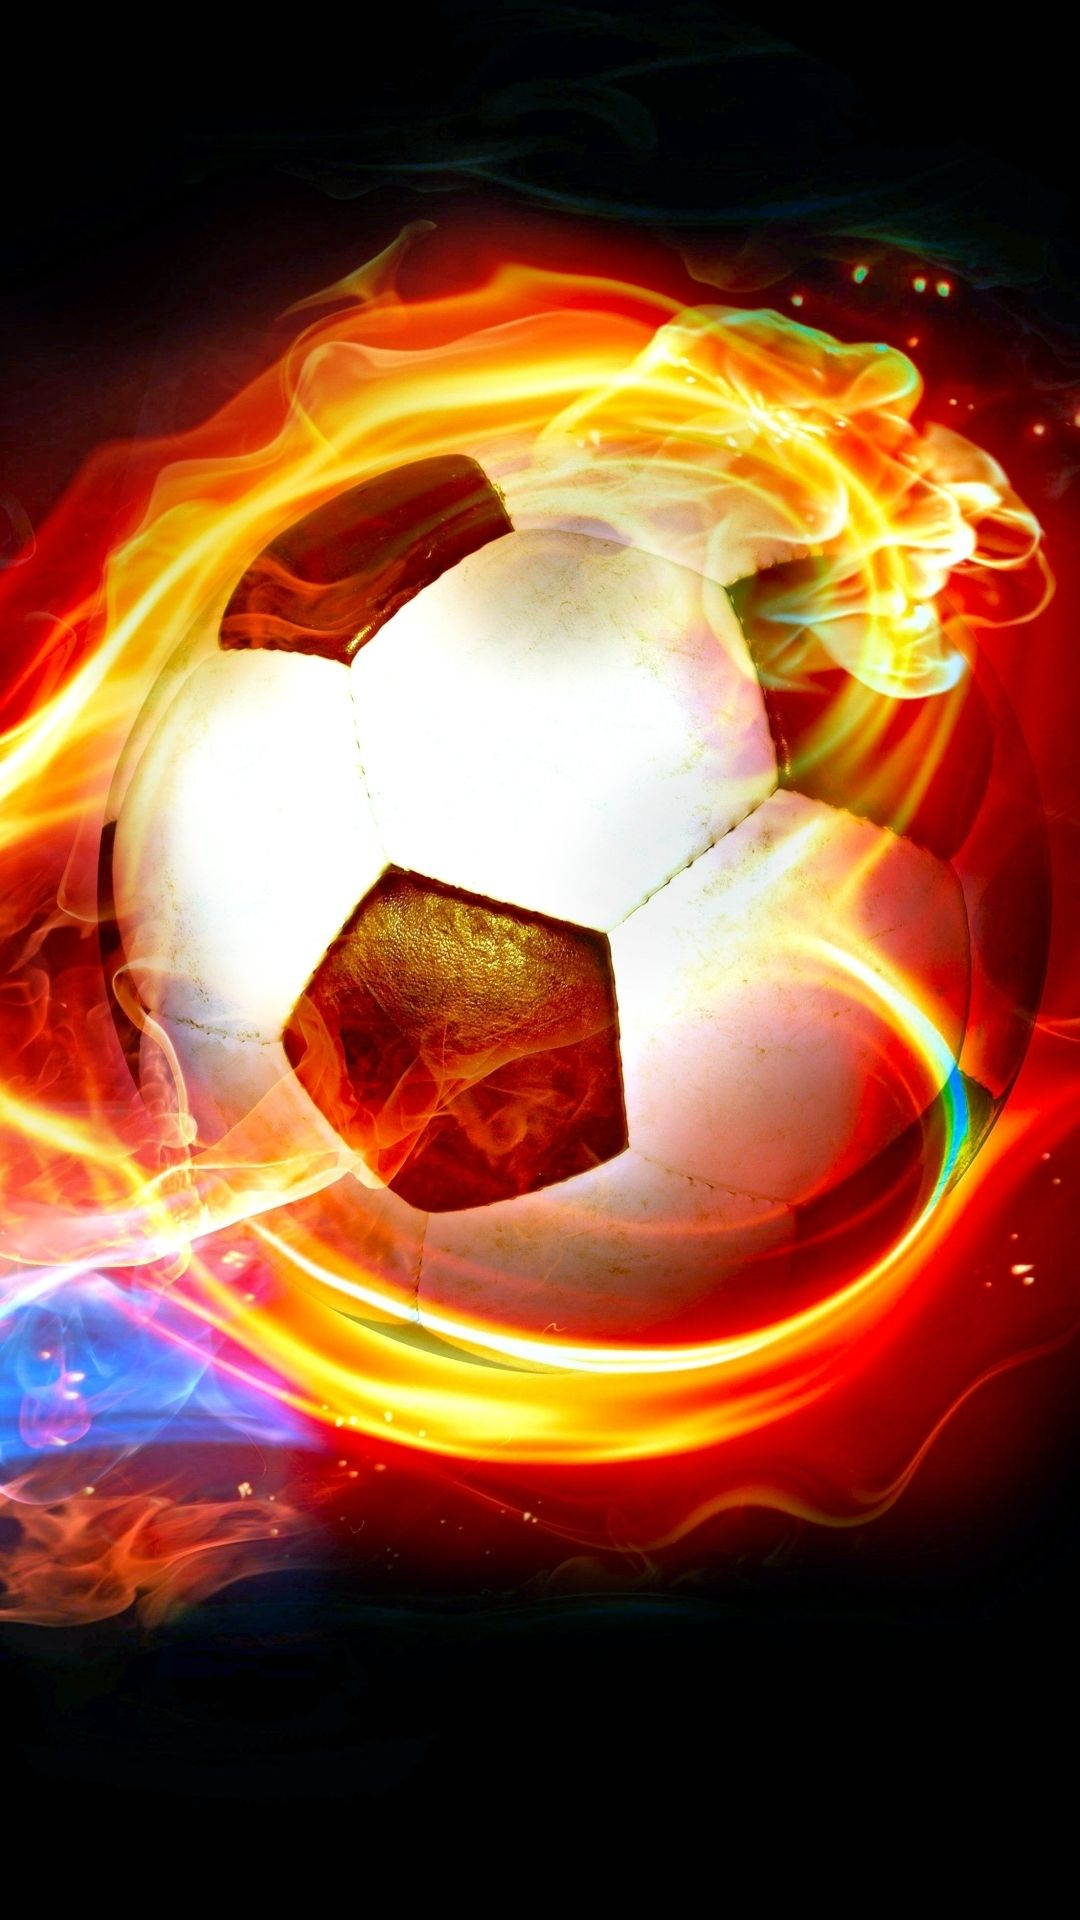 Soccer Wallpaper Iphone 6 Download Best Soccer Wallpaper Iphone 6for Iphone Wallpapers Inhd You Can Find Othe Soccer Backgrounds Soccer Background Pictures